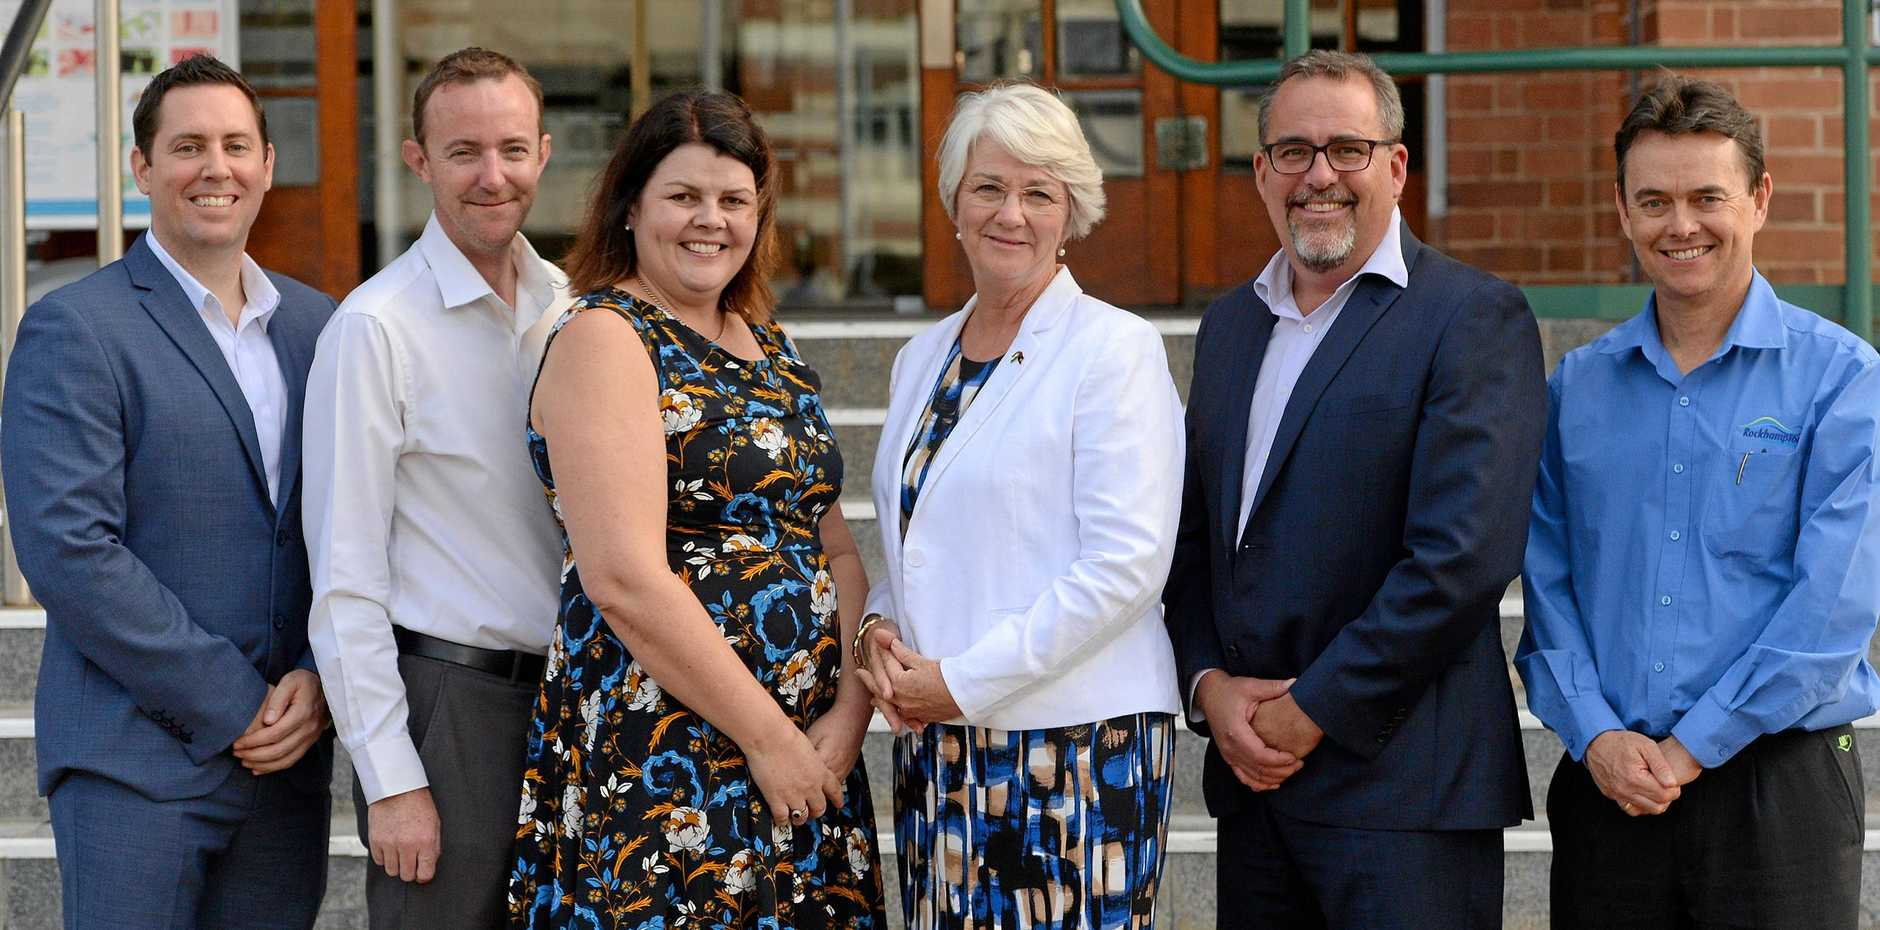 Member's of the Rockhampton Region Council team with Deputy CEO Ross Cheesman on the far right.